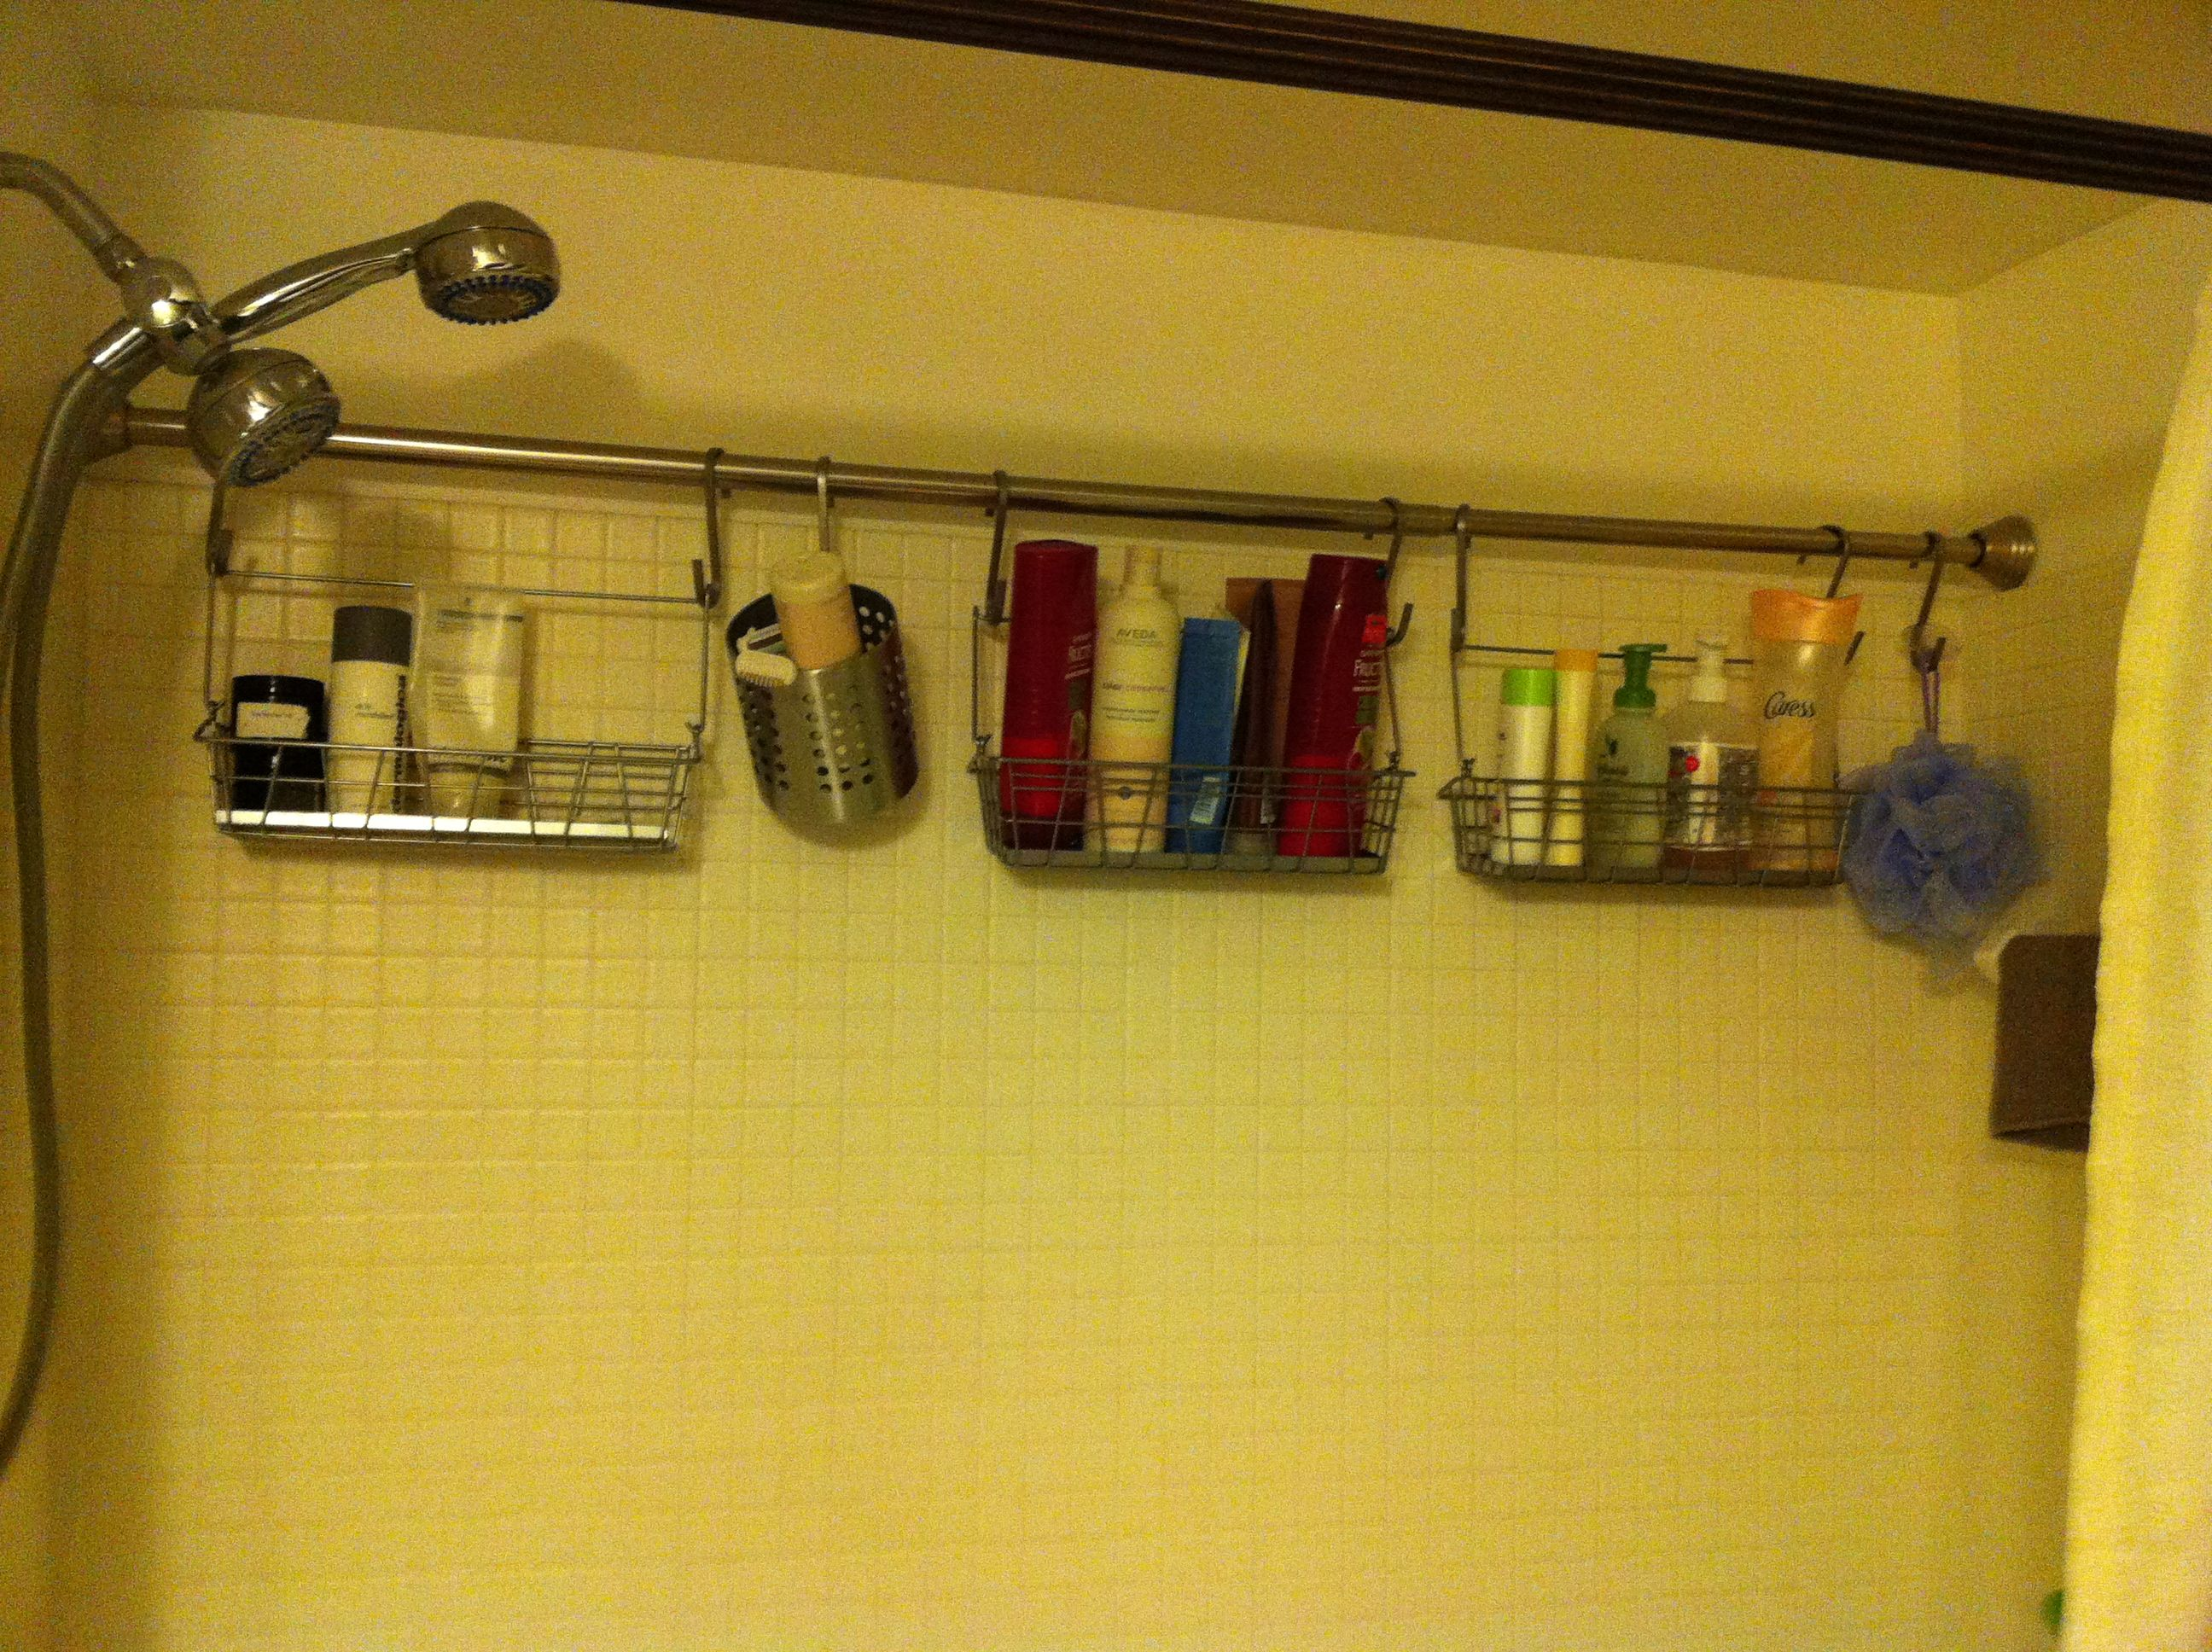 Genius 2nd Shower Curtain Rod Used To Hang Caddies Full Of